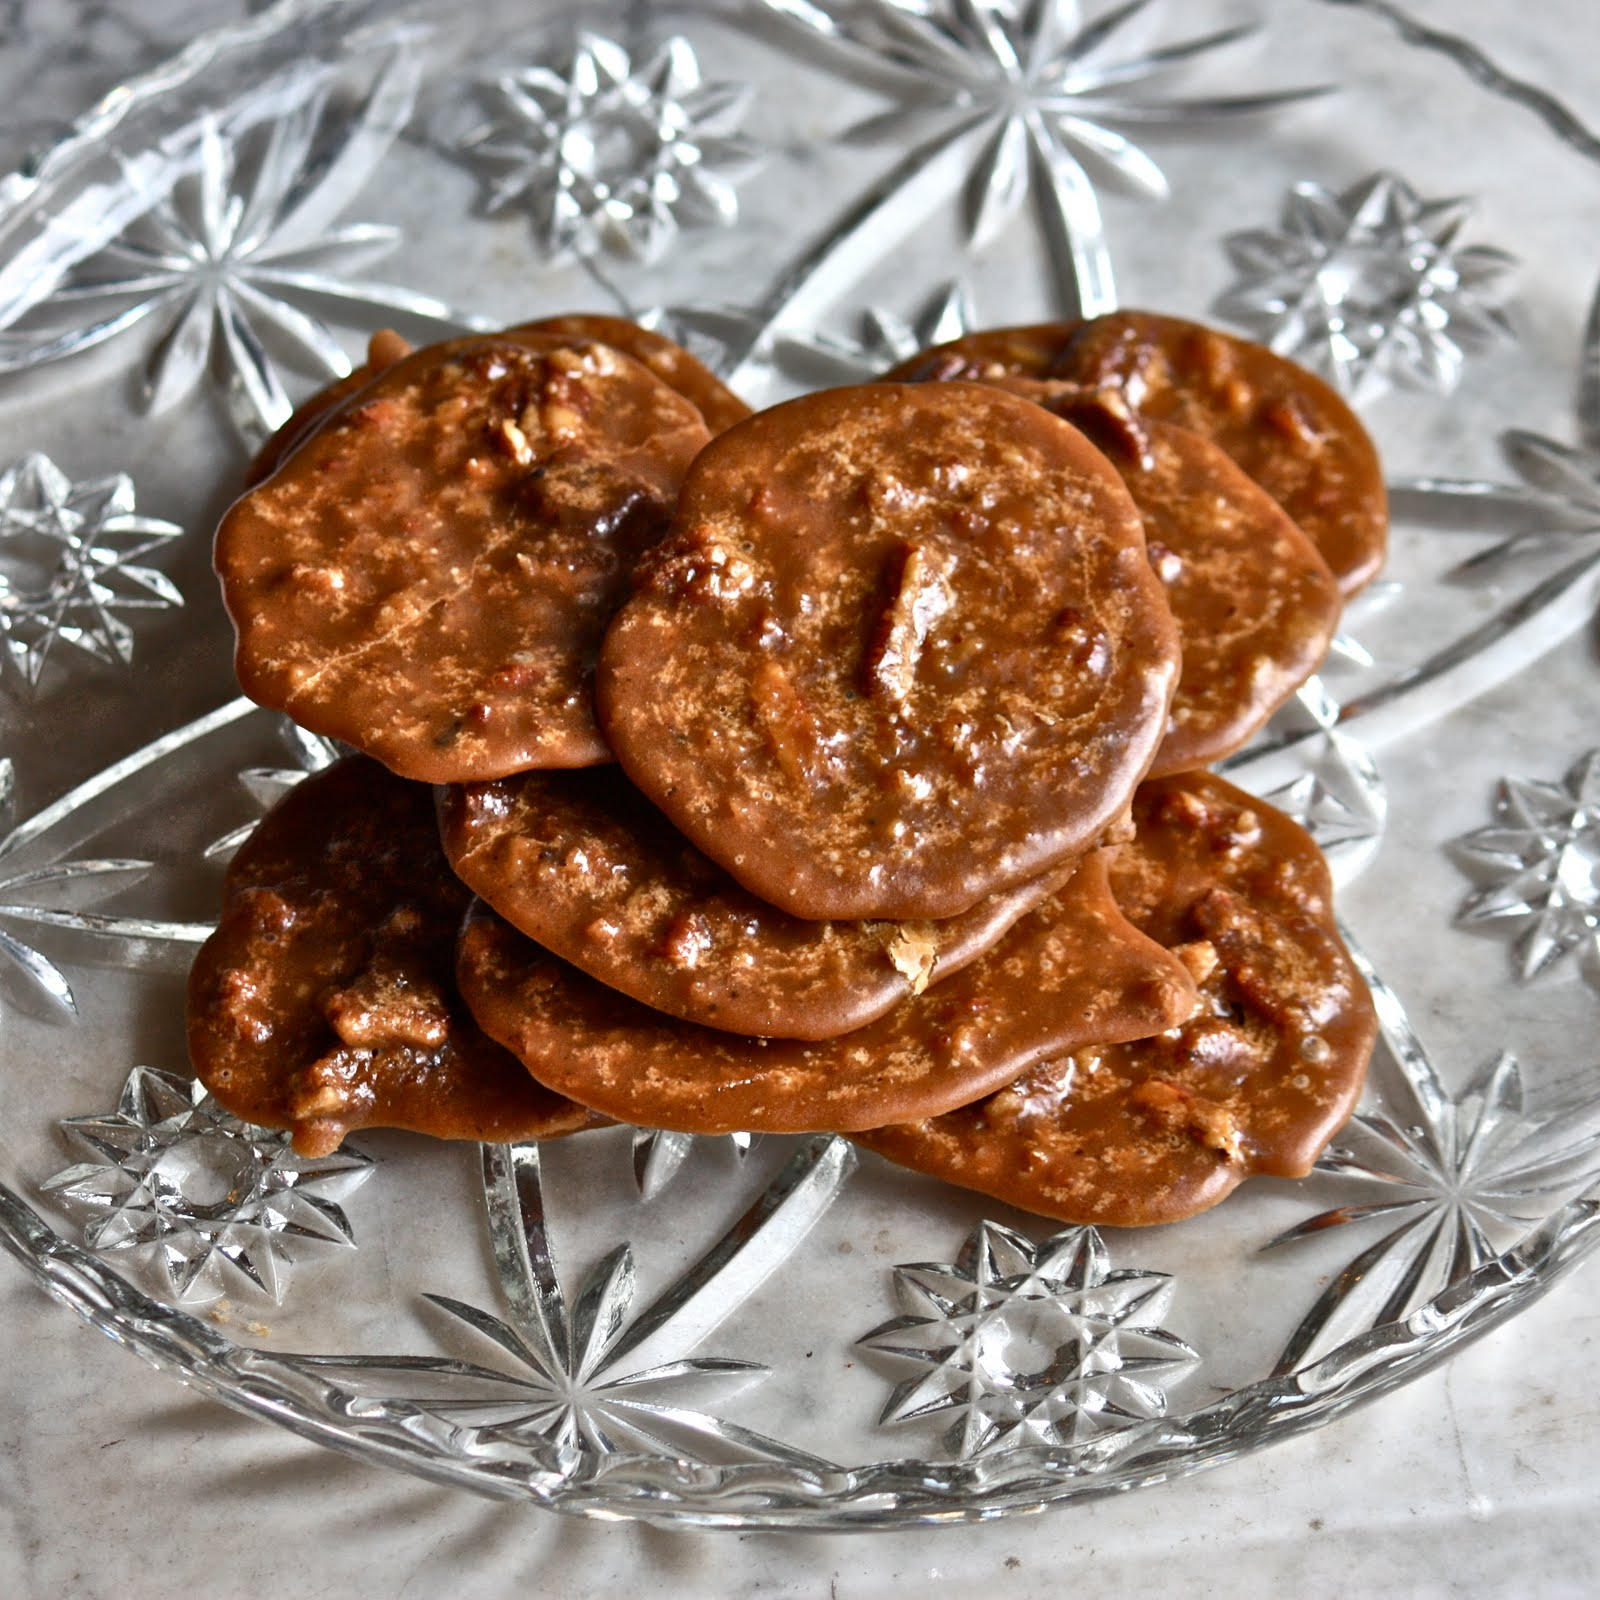 ... pecan treat is pecan pralines i was inspired to create a batch